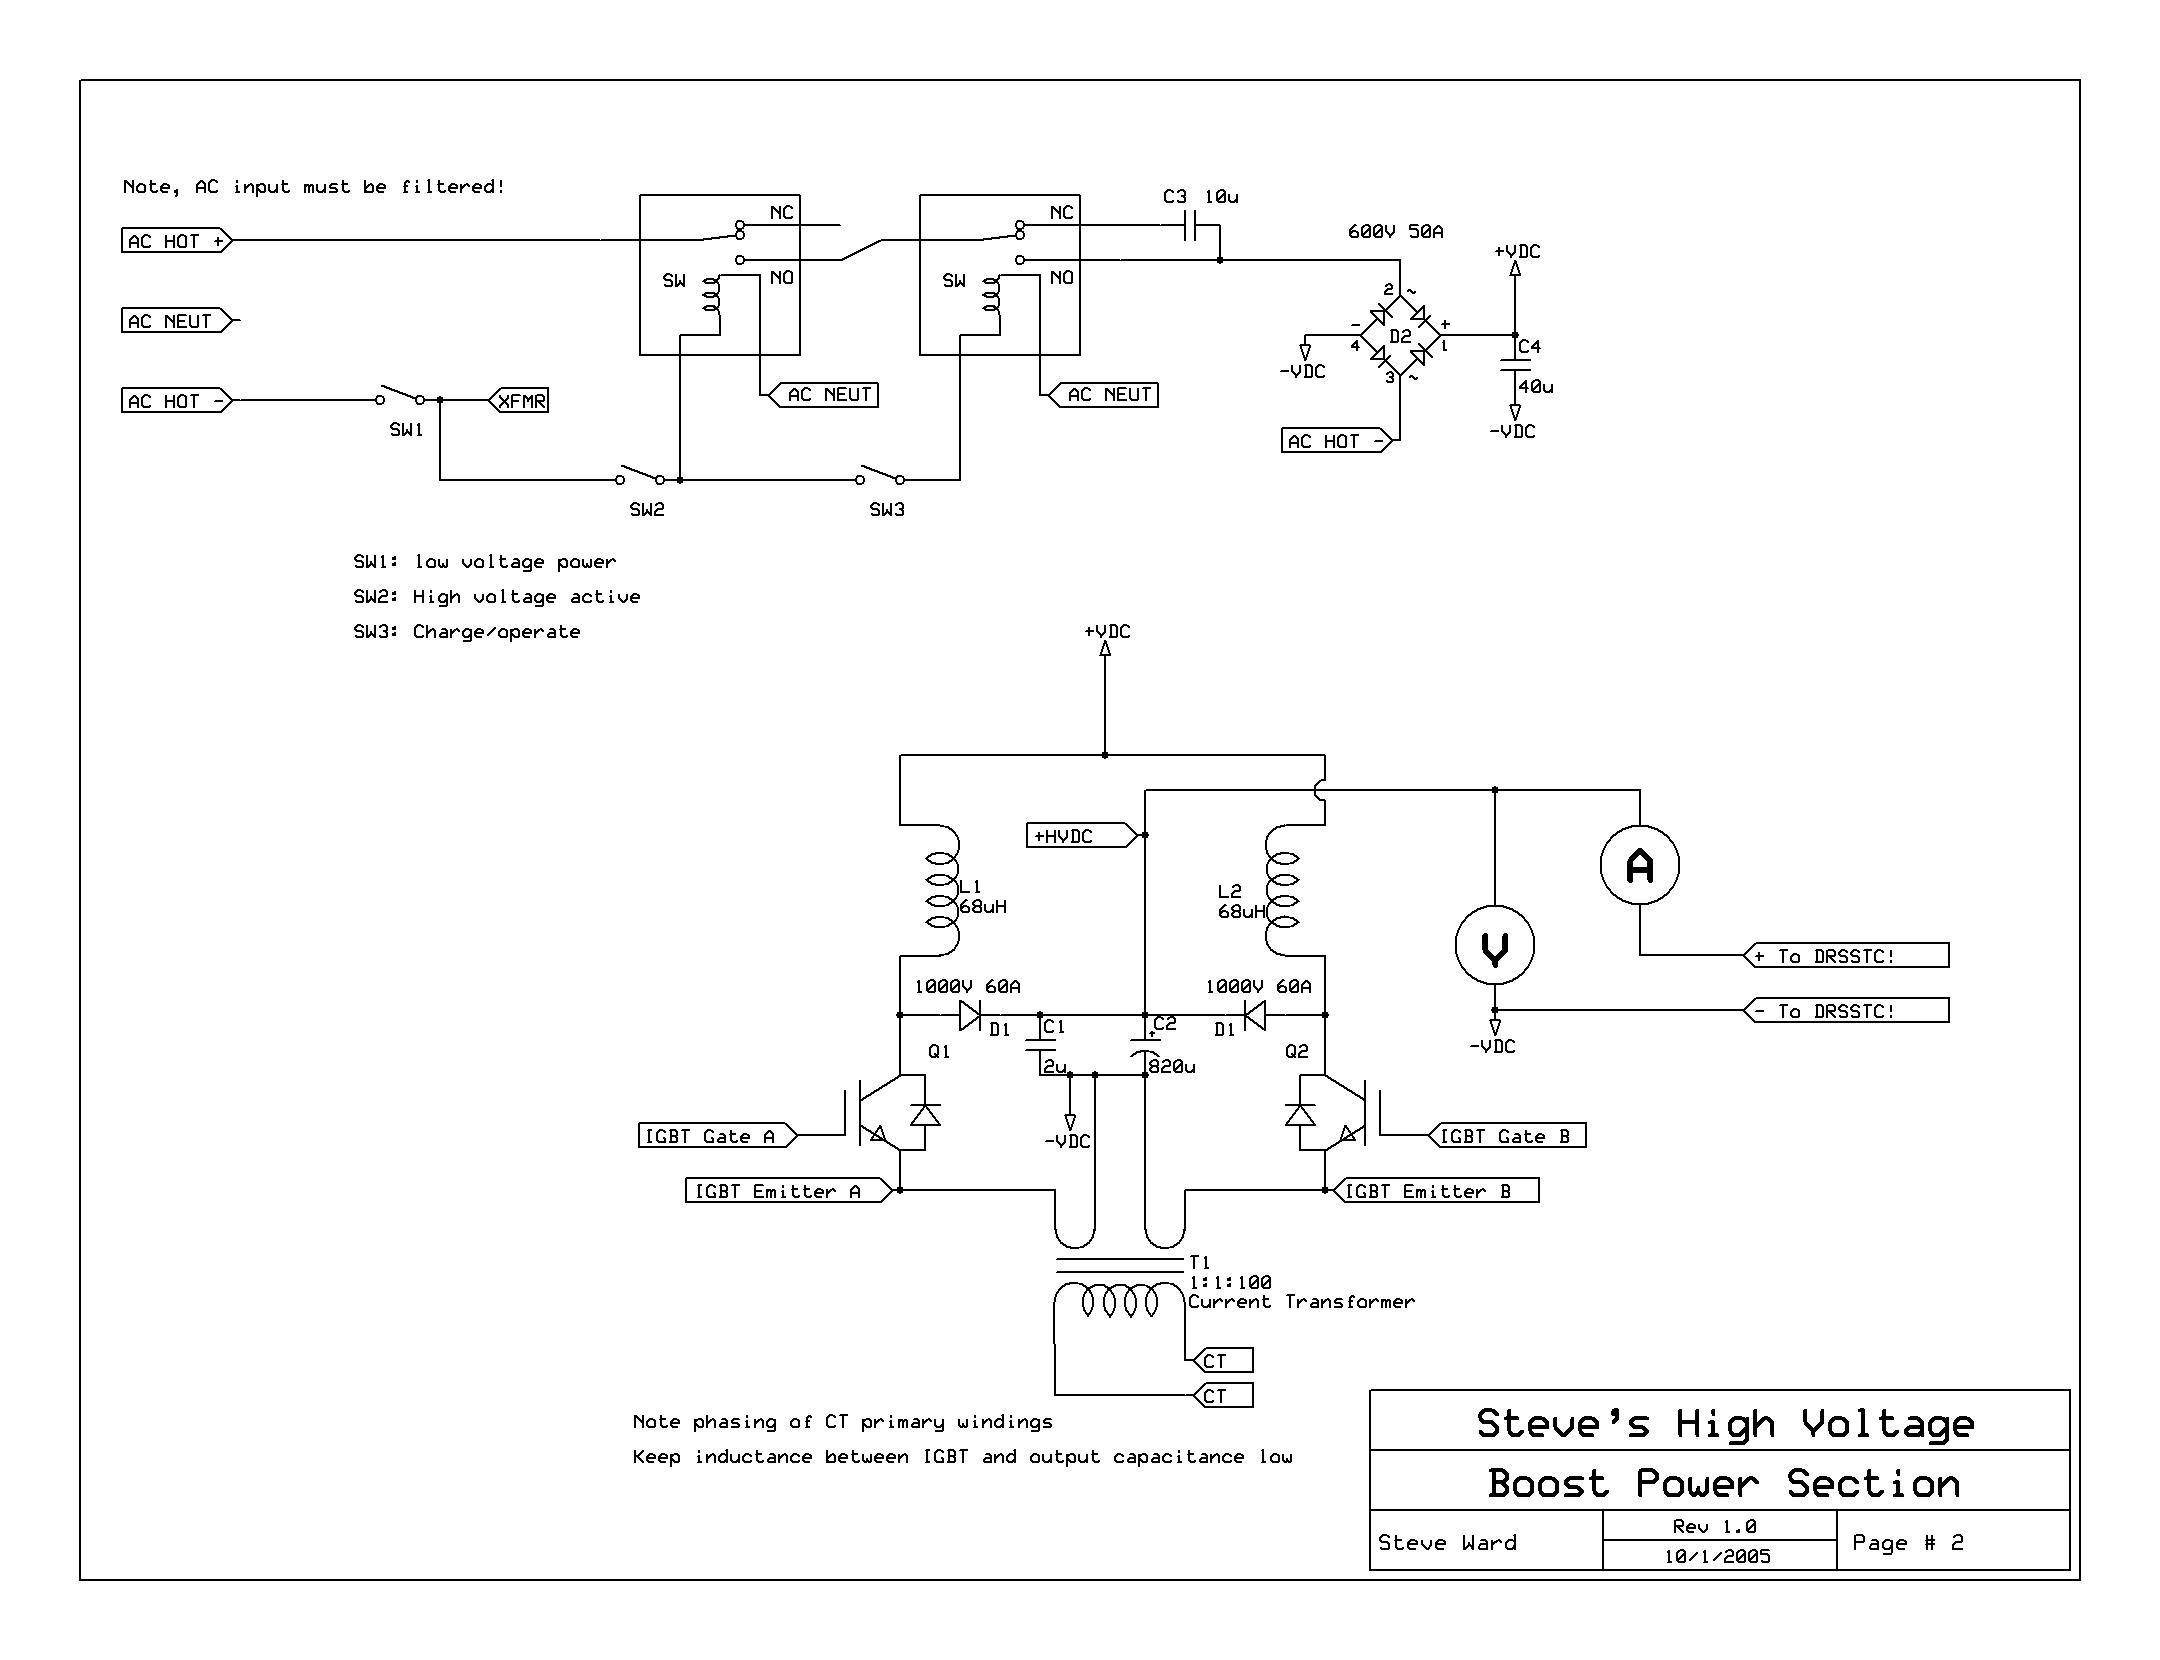 12kw Pfc Boost Converter Circuit Diagram Of A Typical Power Factor Correction Schematics For The Input And High Voltage Section